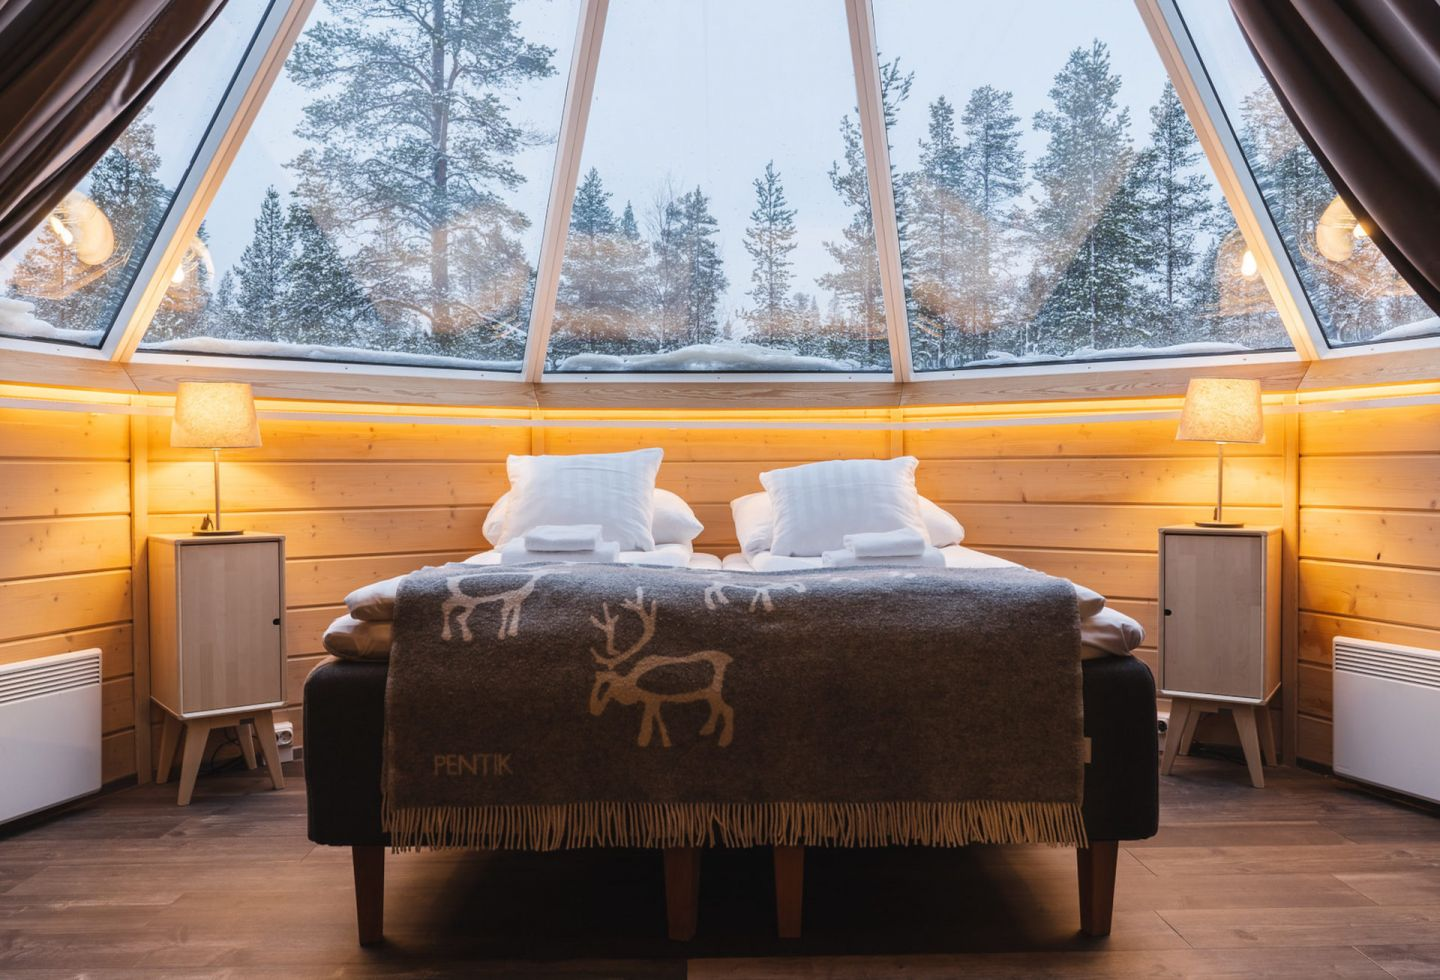 The view from the bed at Northern Lights Village, a special winter accommodation in Inari-Saariselkä, Finland